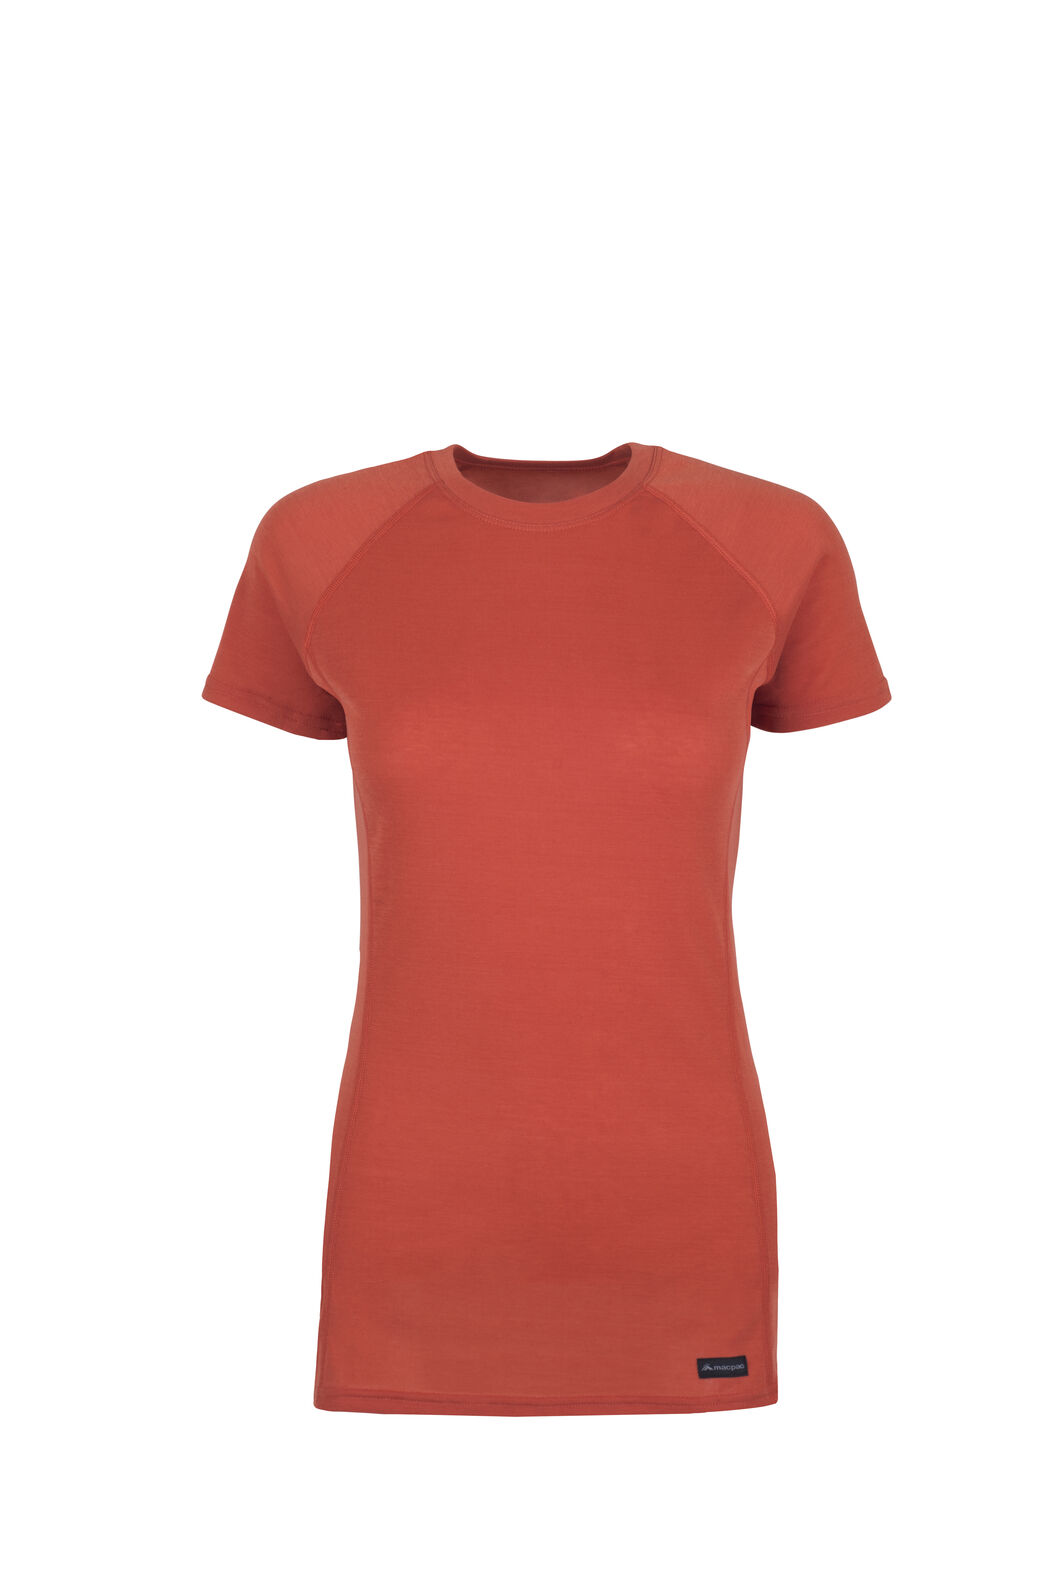 Macpac Geothermal Short Sleeve Top - Women's, Chilli, hi-res